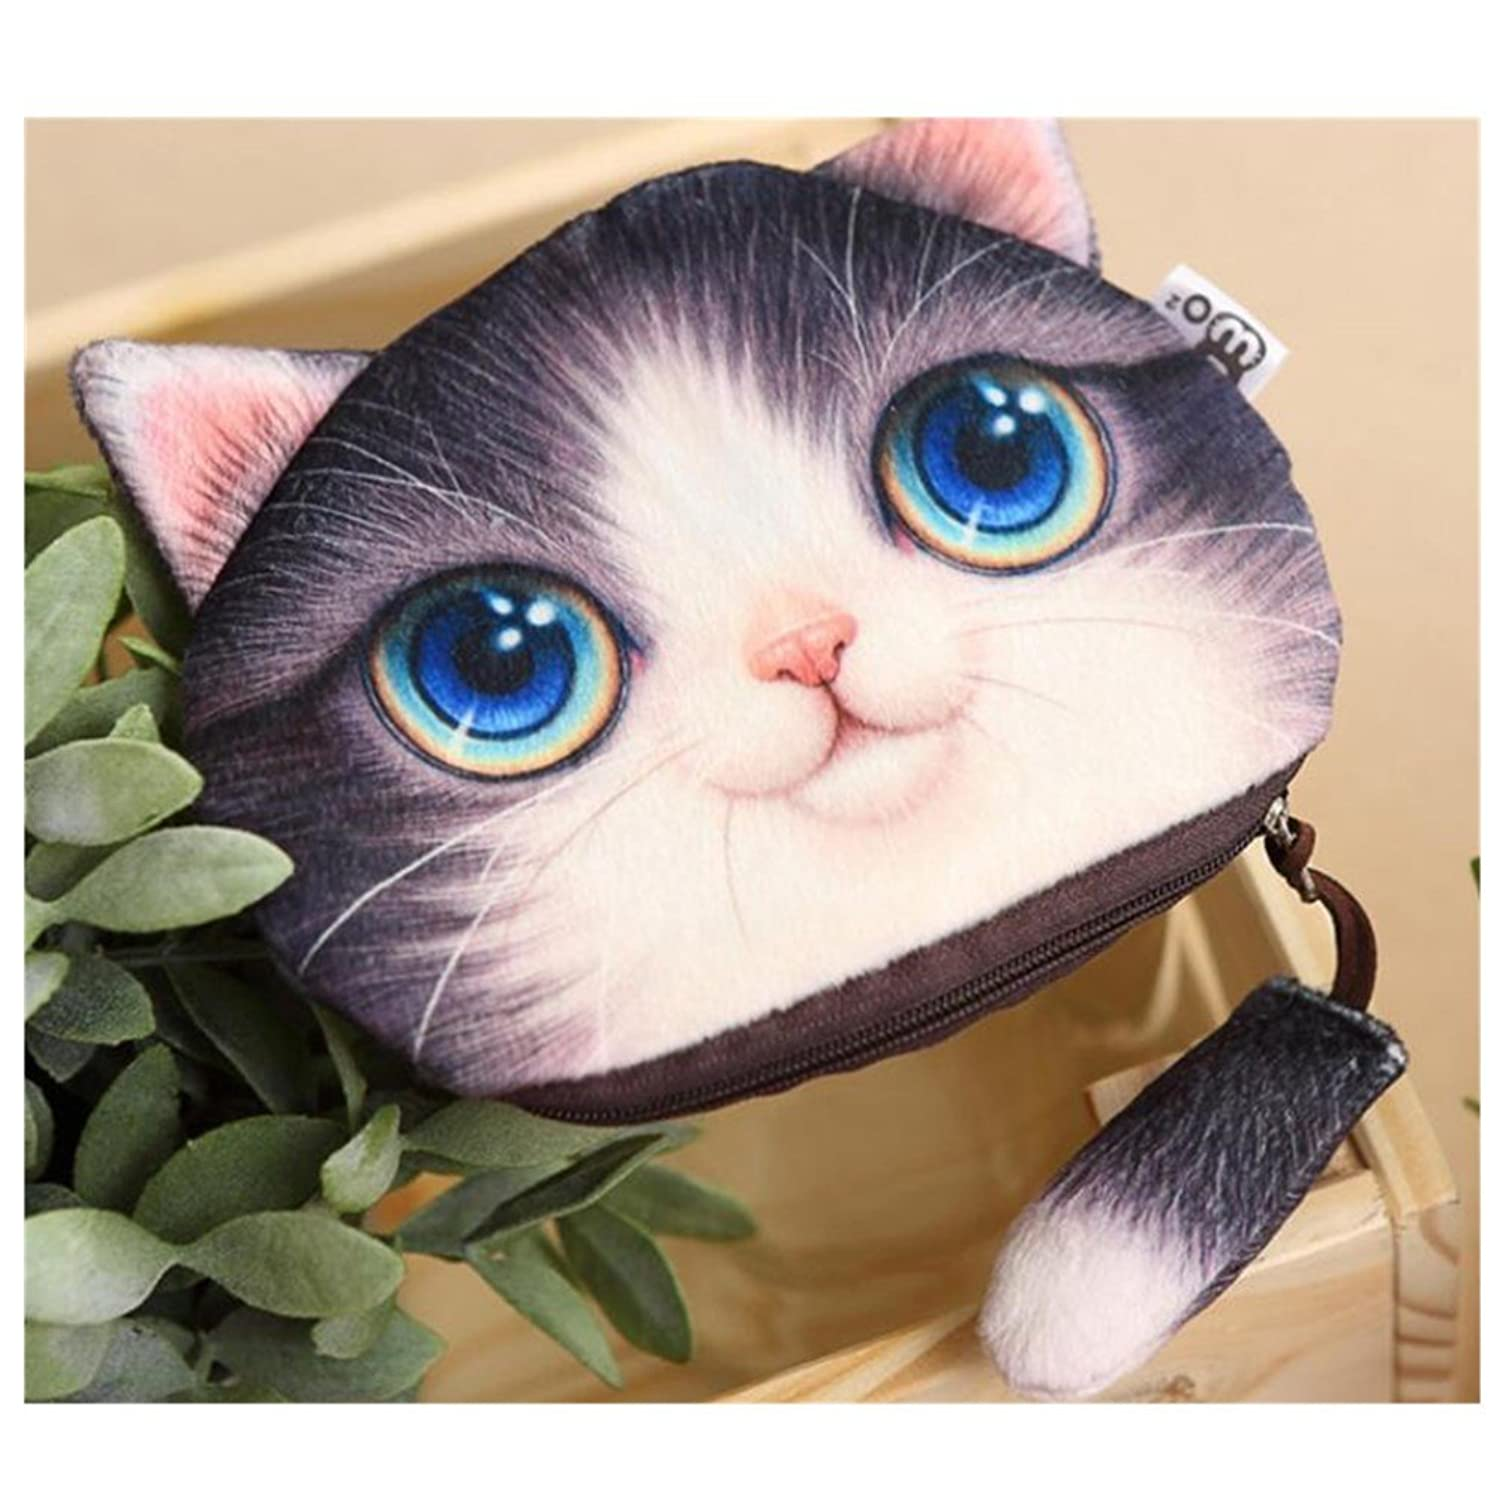 "Aksautoparts ""Cat Wallet Zipper Clutch Bag Multifunctional Plush Purse """